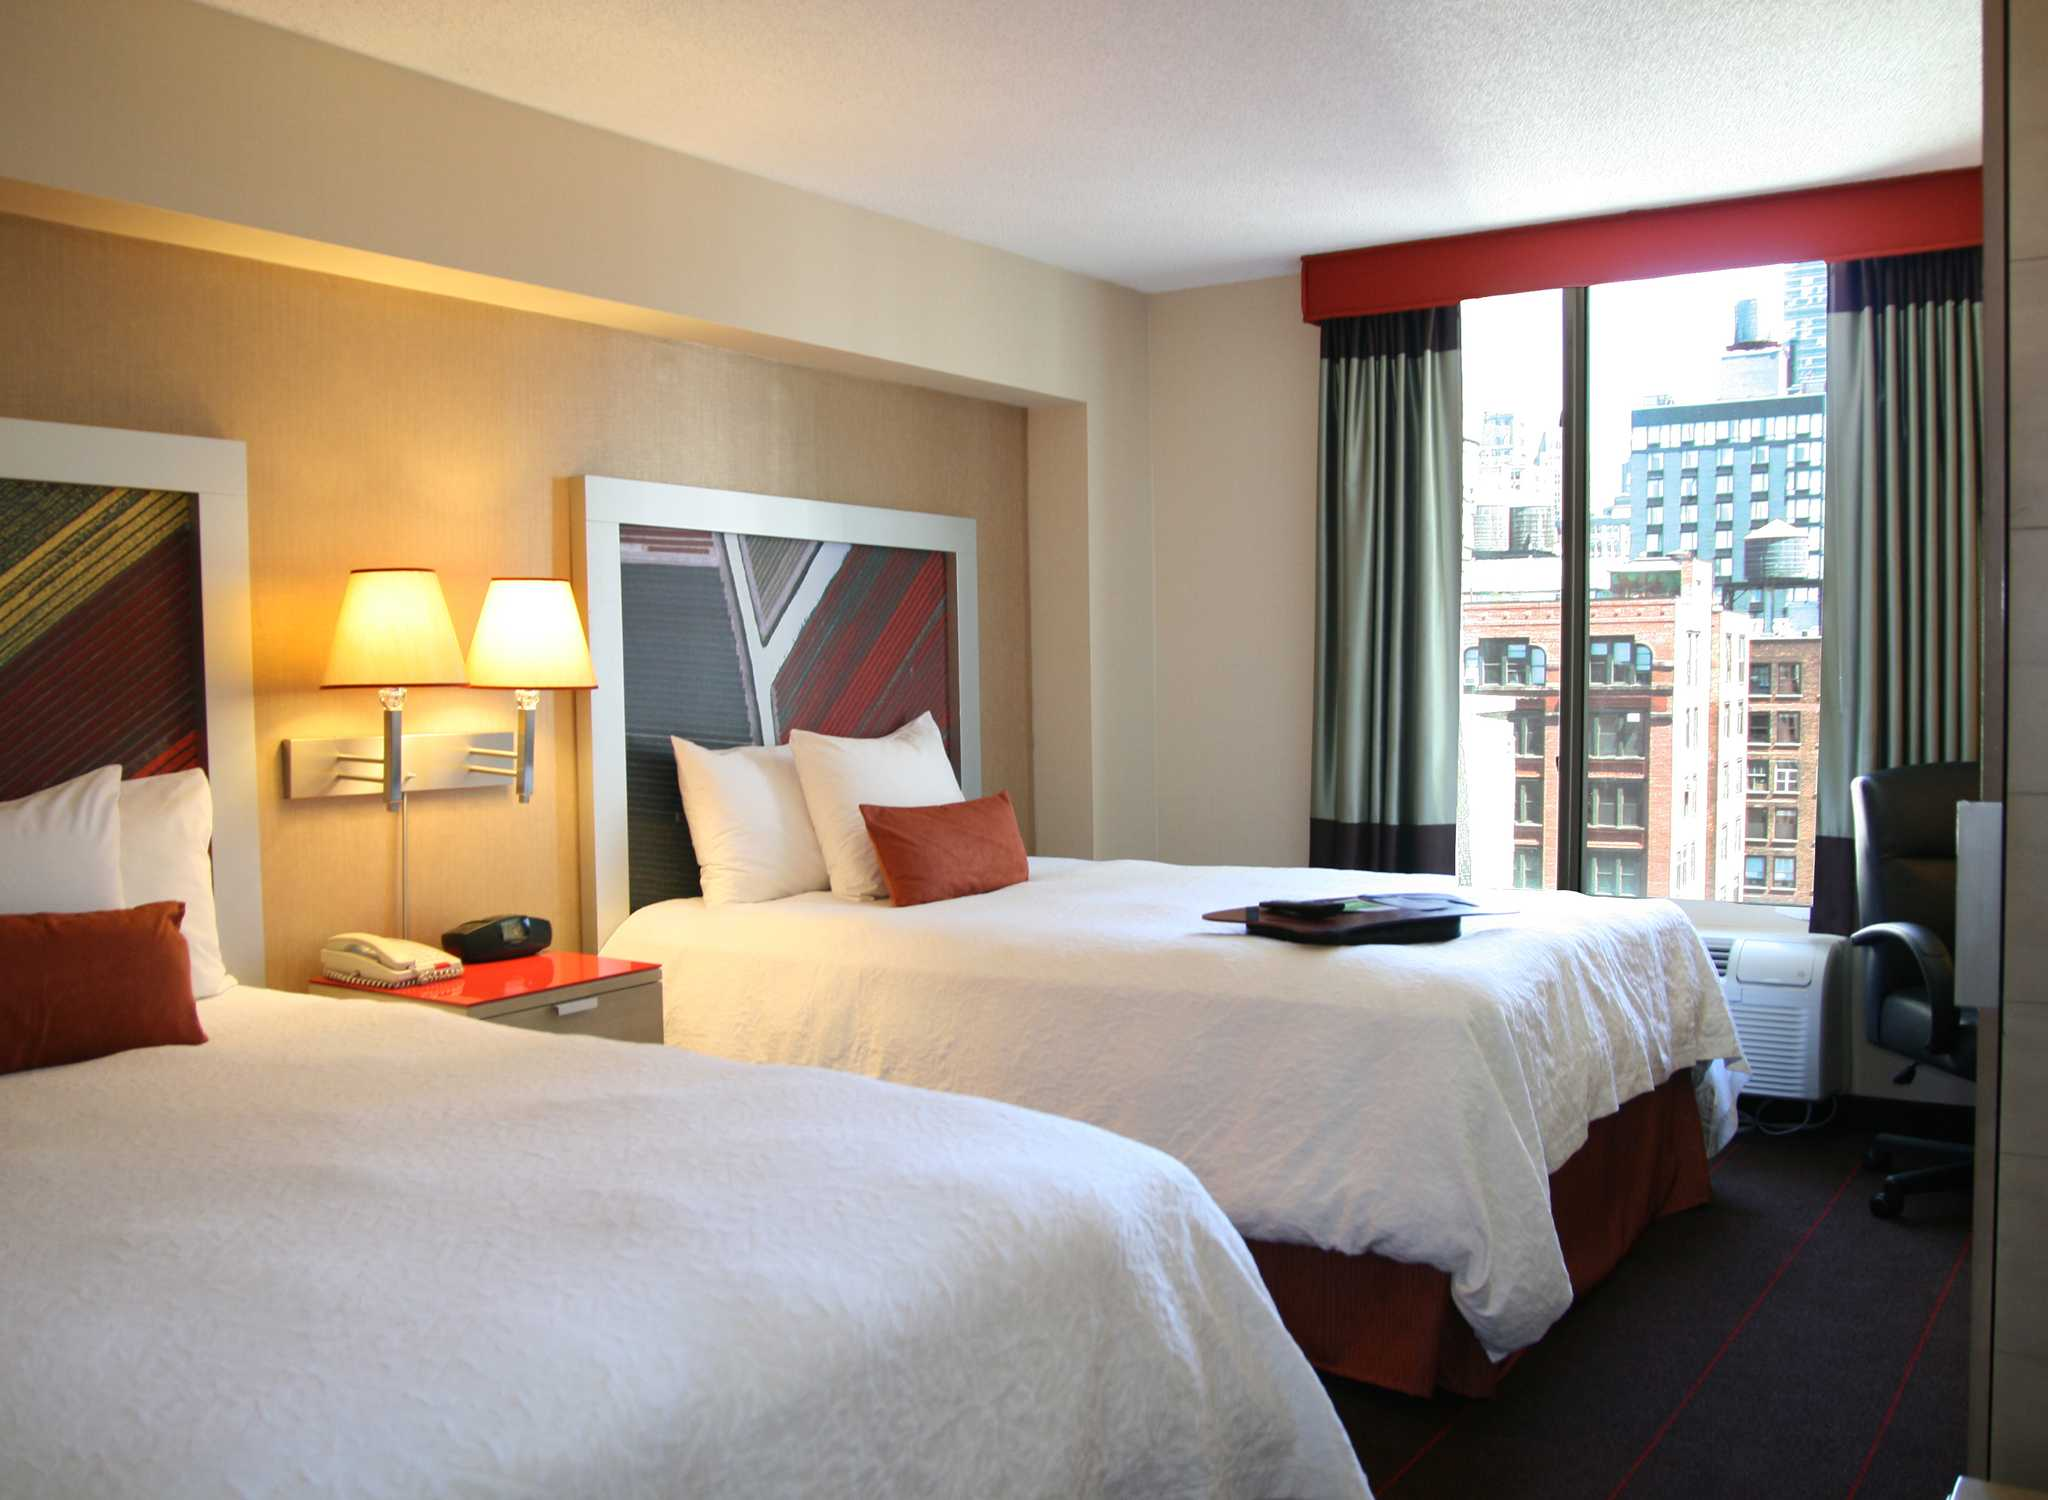 H tel hampton inn chelsea new york pr s de l 39 empire Hilton garden inn new york manhattan chelsea